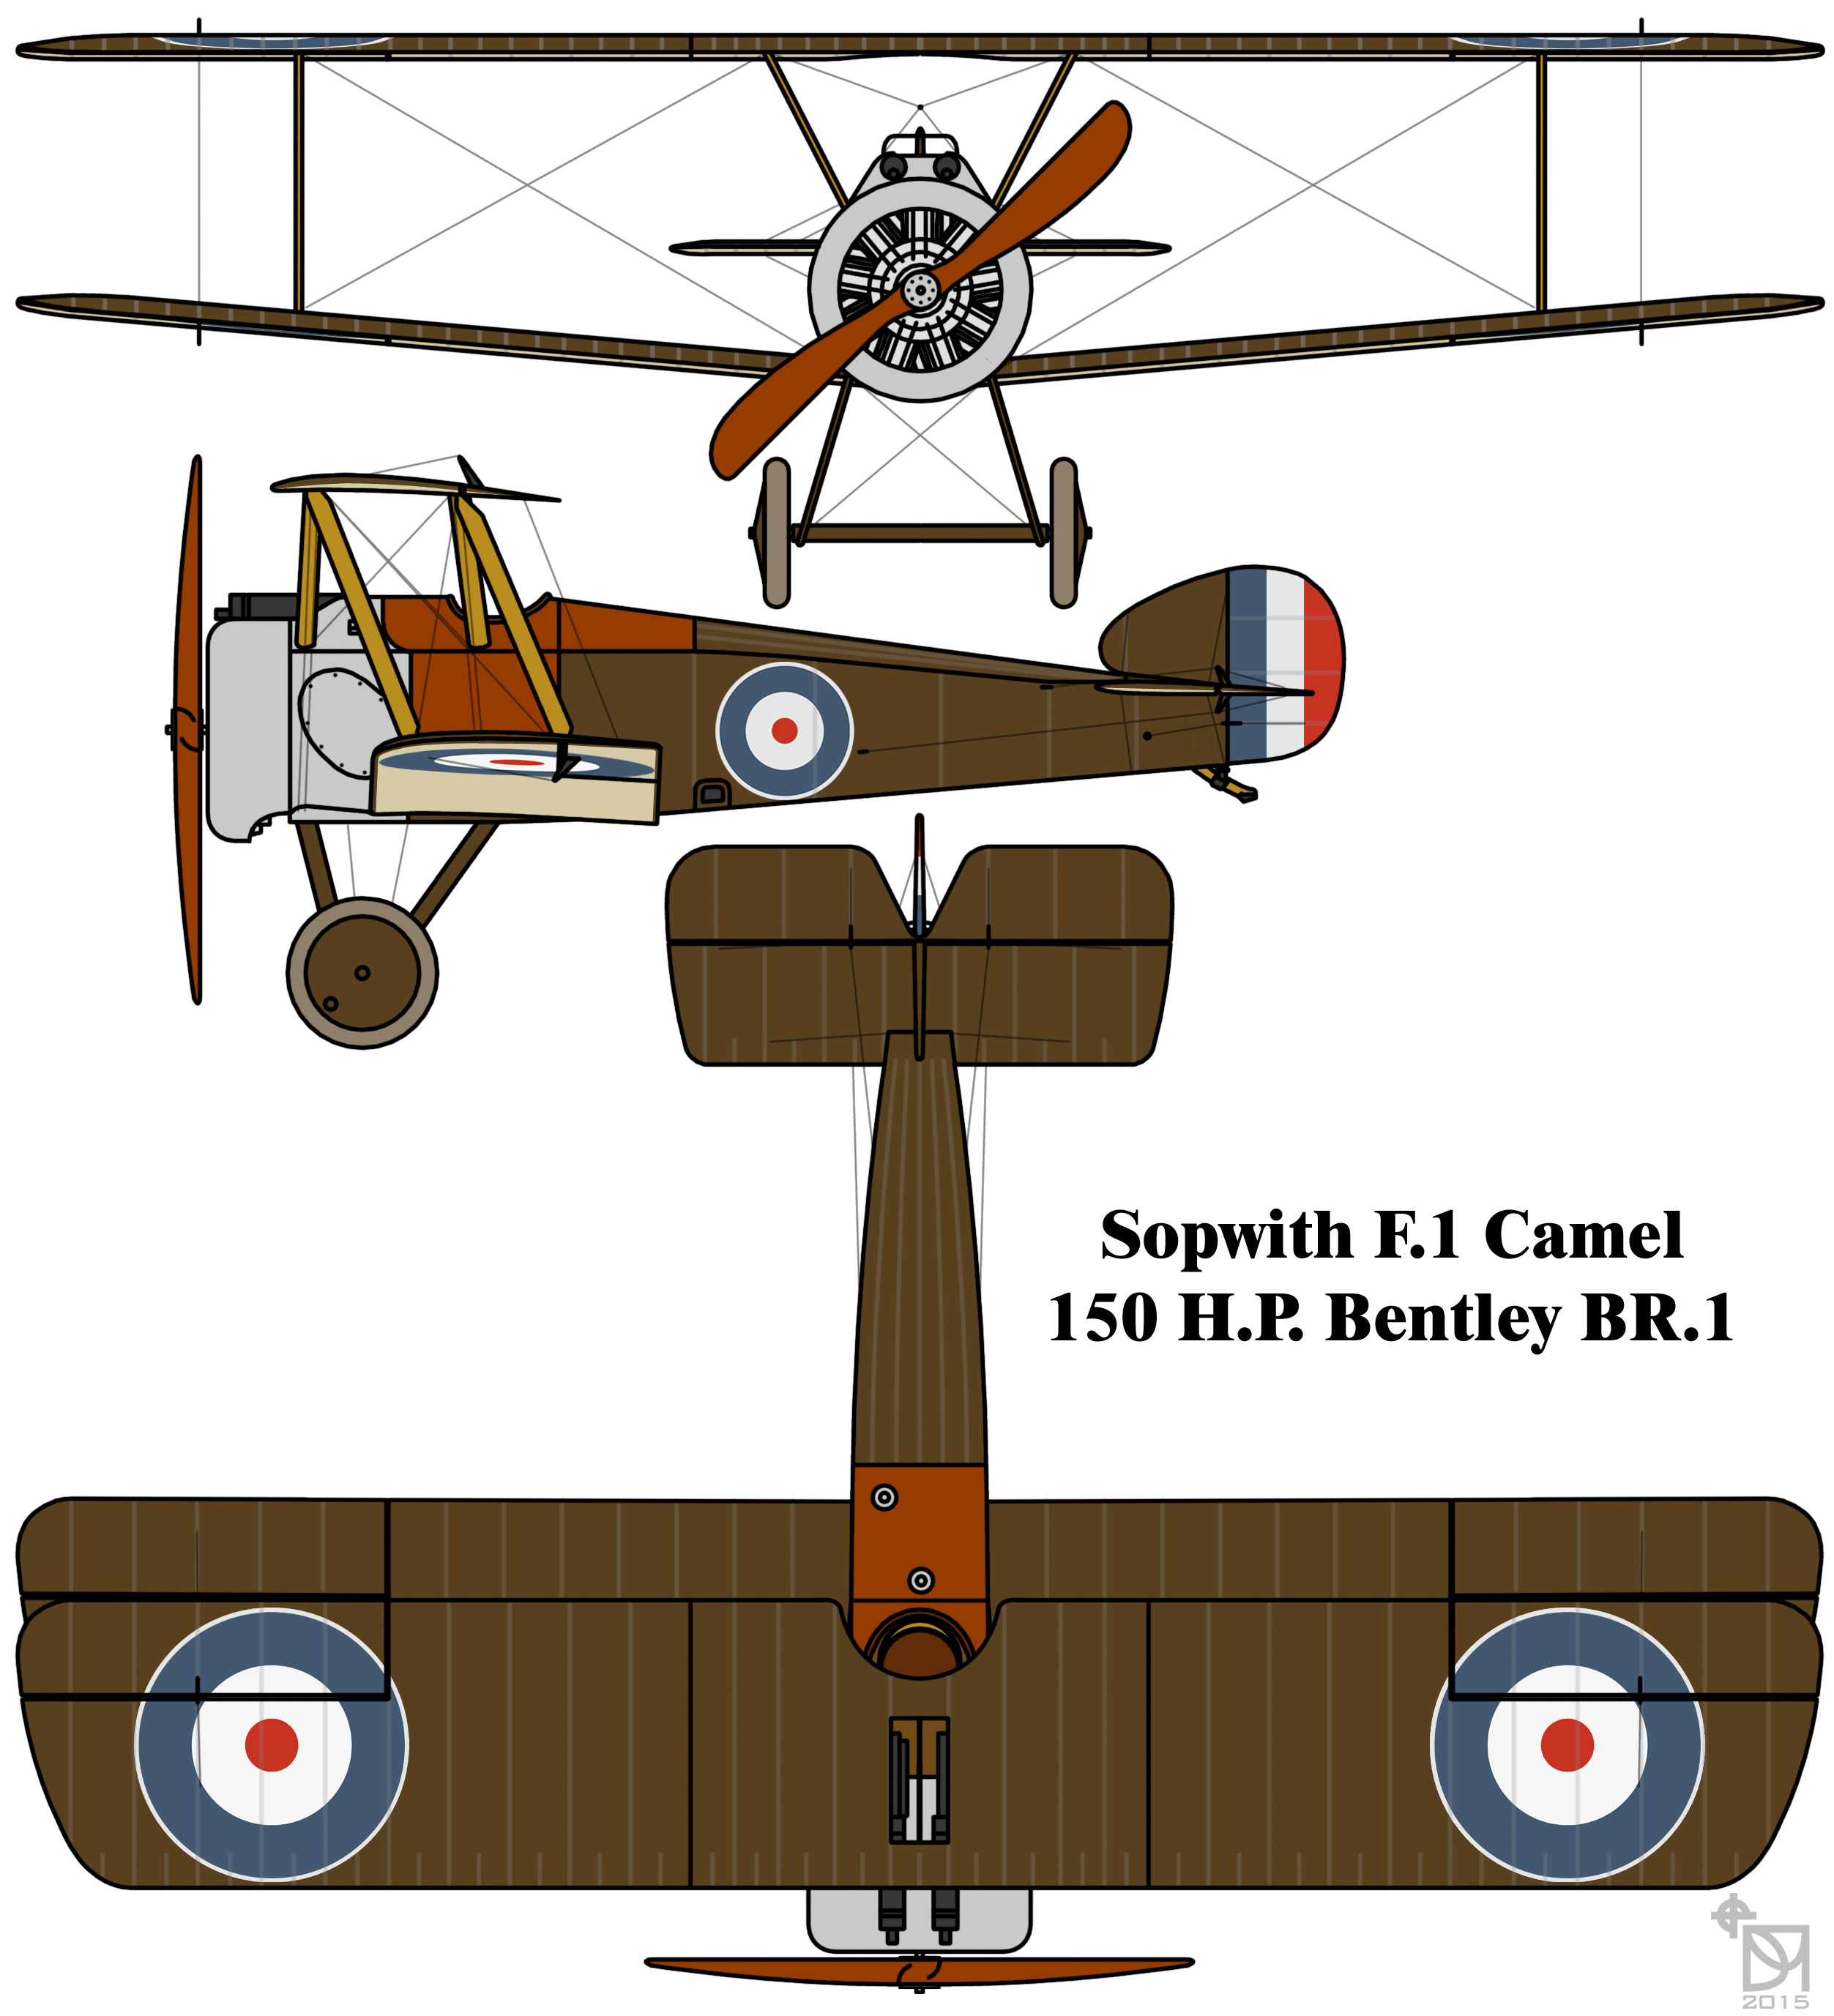 Sopwith Camel Bentley BR.1 radial engine